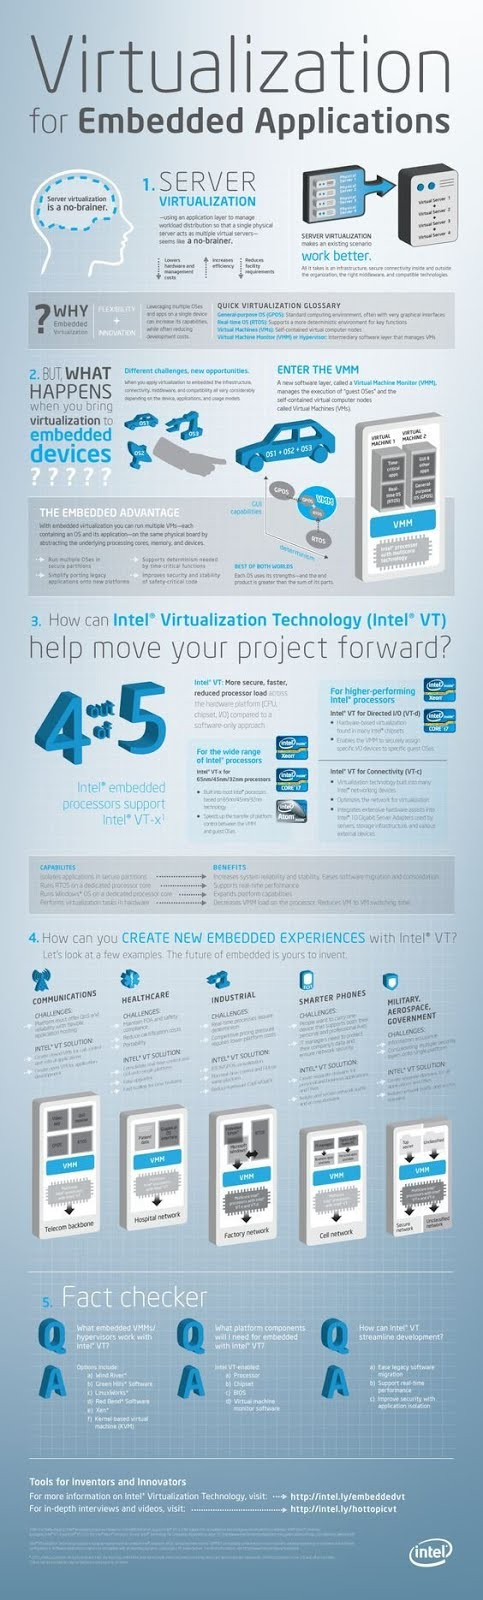 Virtualization for embedded application